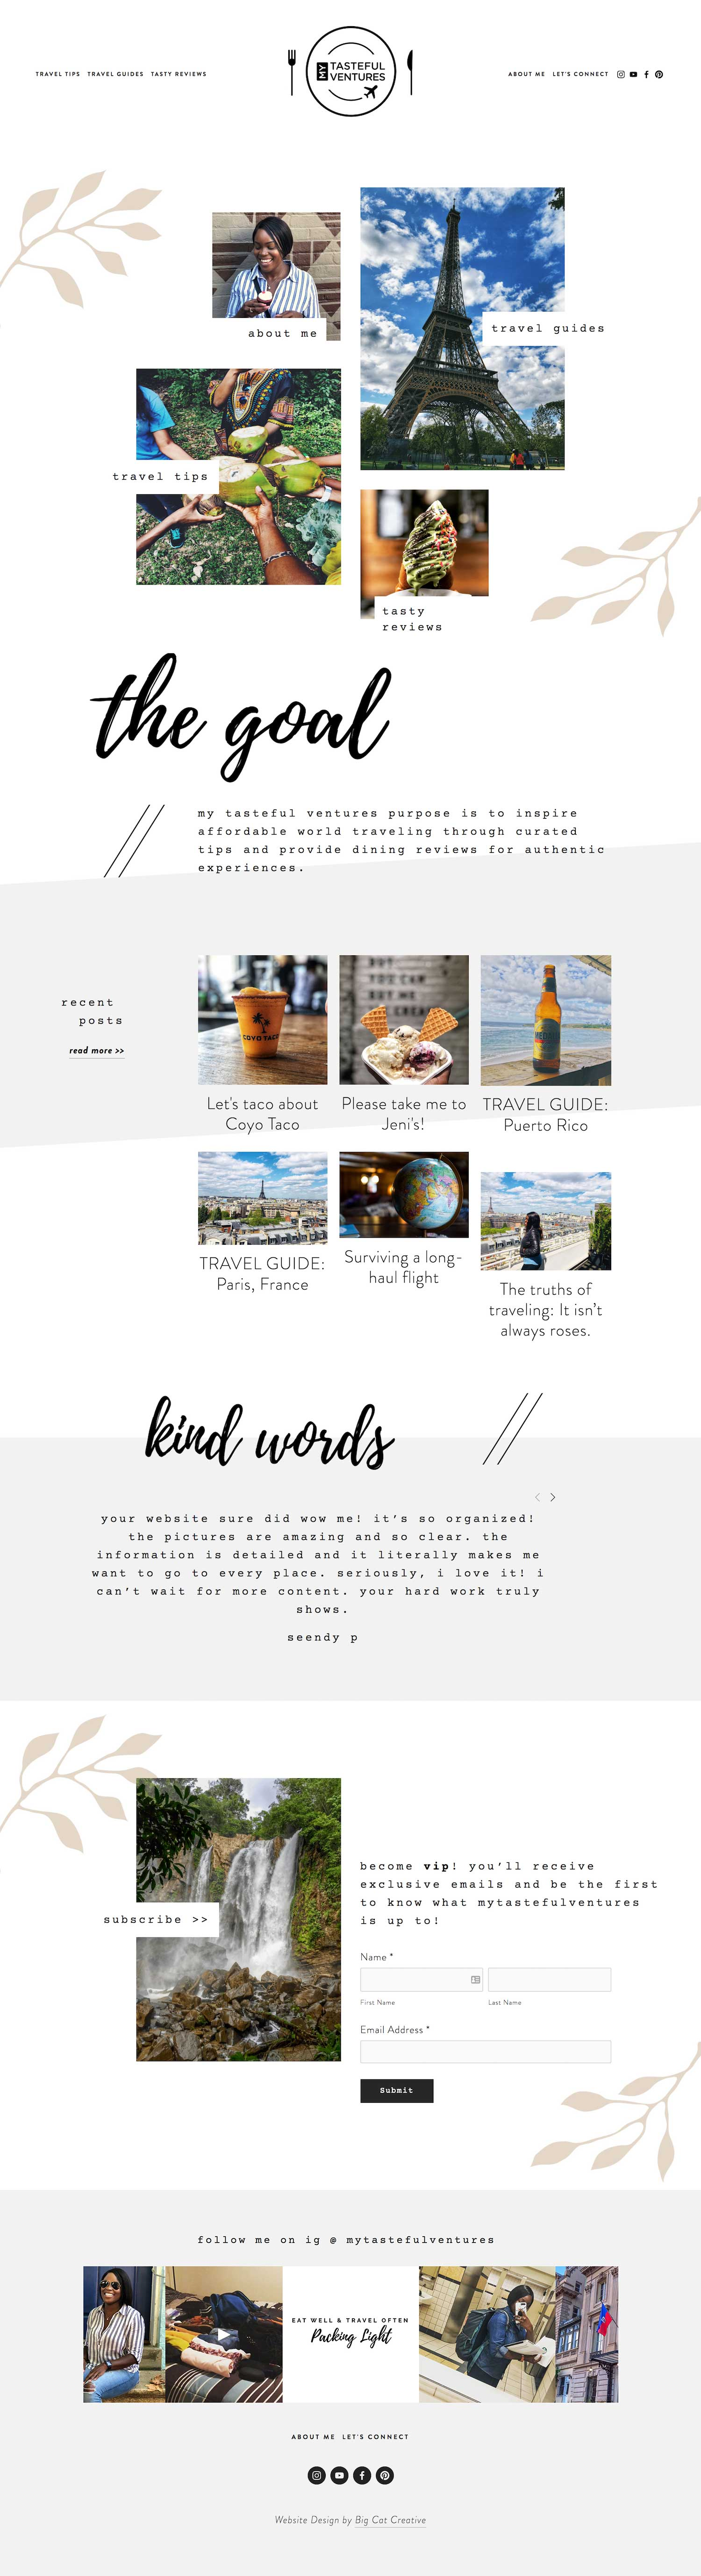 Squarespace Template Design by Big Cat Creative - Paradiso Template Showcase - My Tasteful Ventures